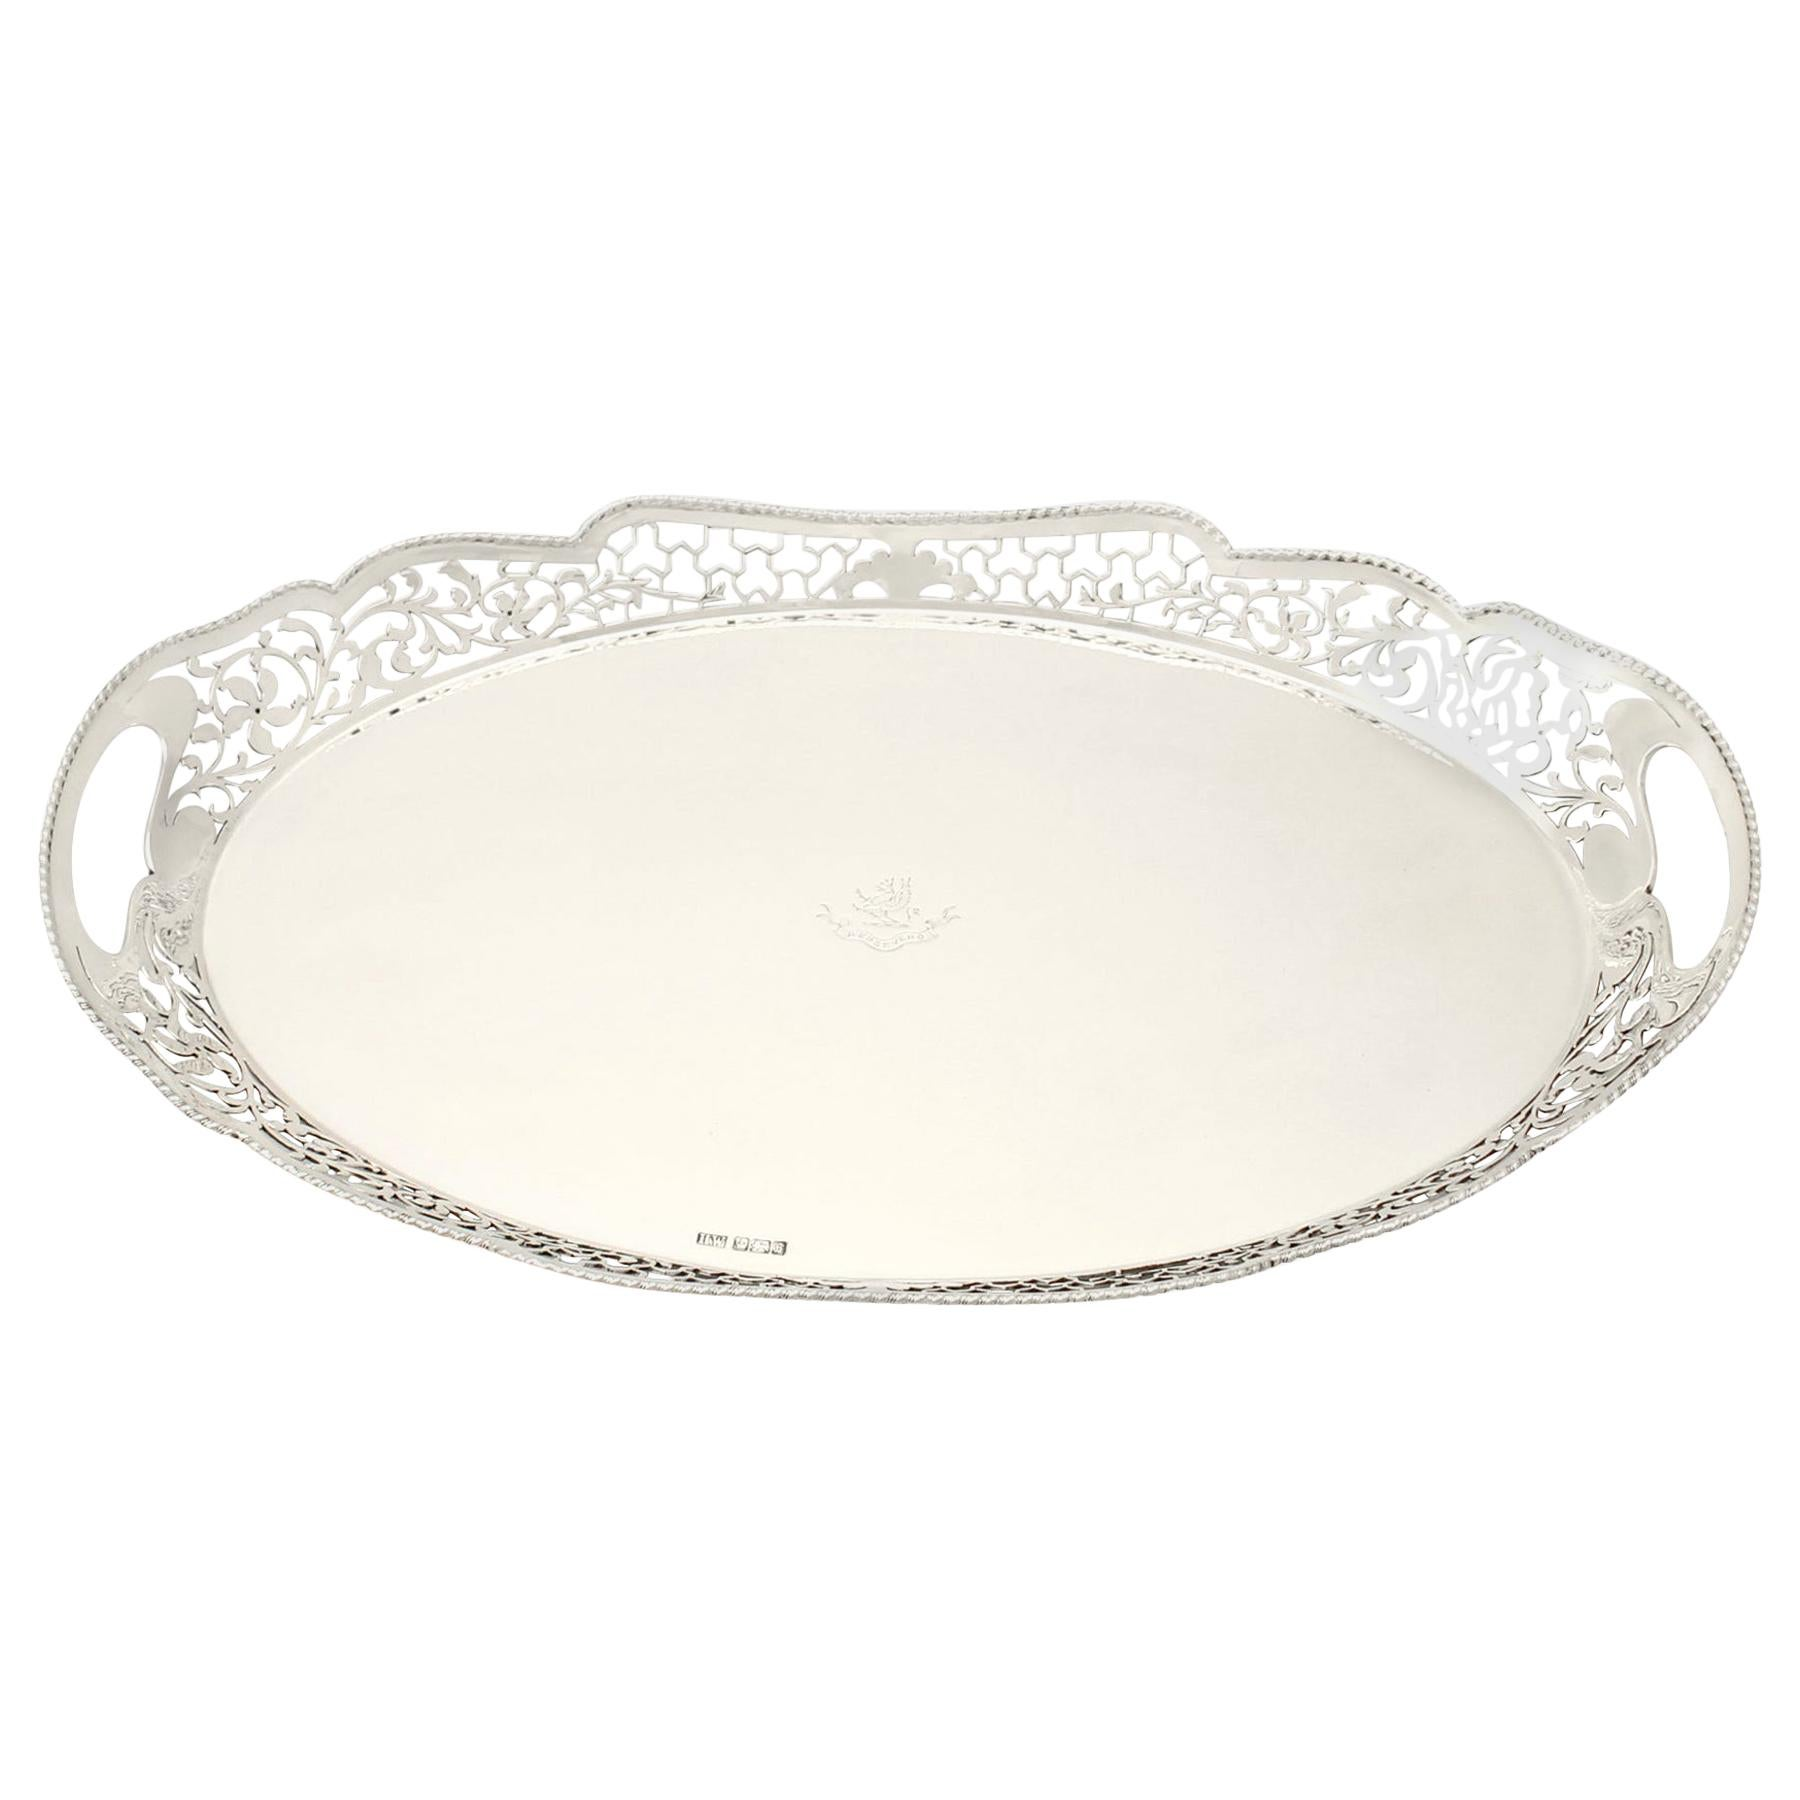 Antique 1910 Edwardian English Sterling Silver Gallery Tray